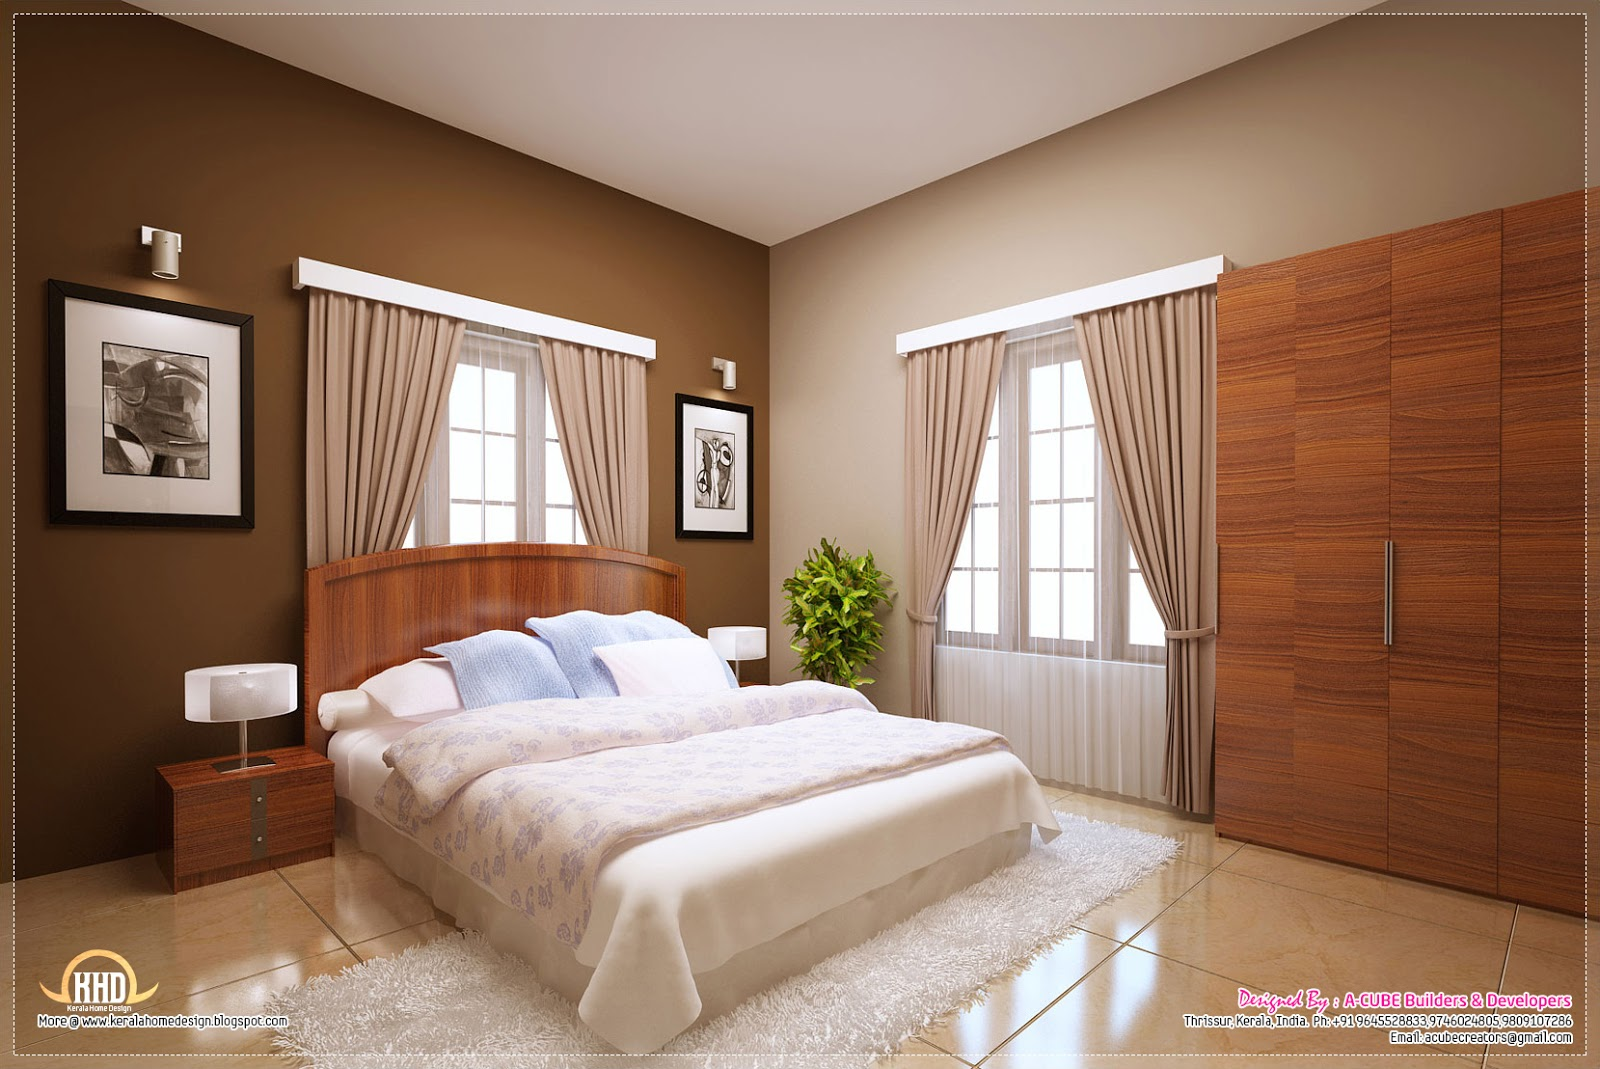 Awesome interior decoration ideas house design plans Bedroom interior decoration ideas